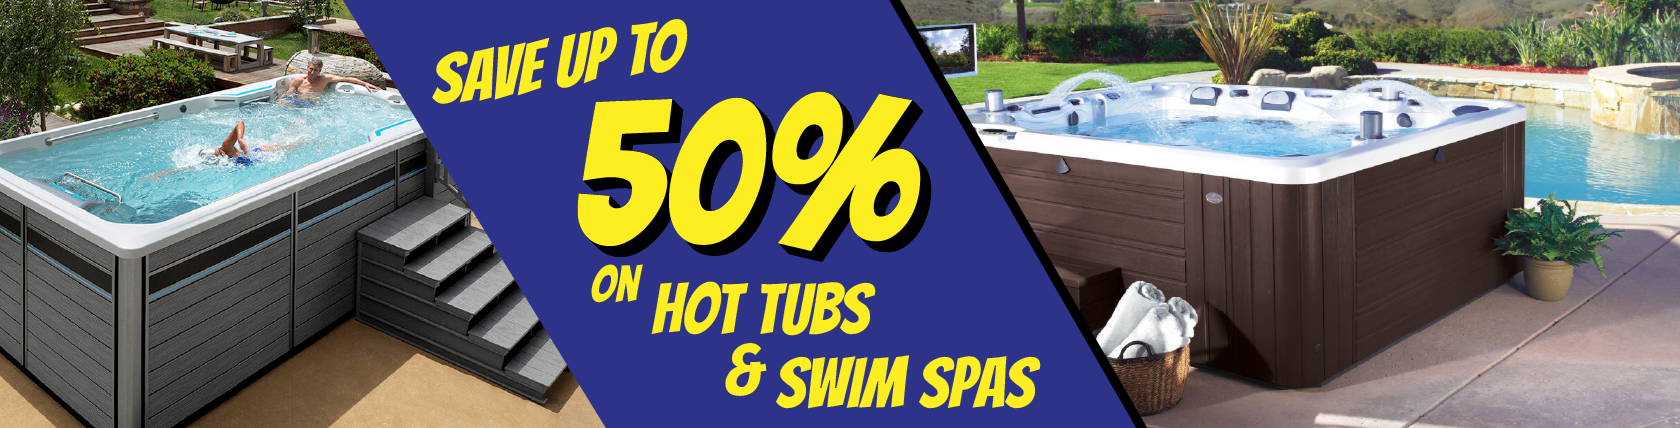 Save up to 50% on Hot Tubs and Swim Spas